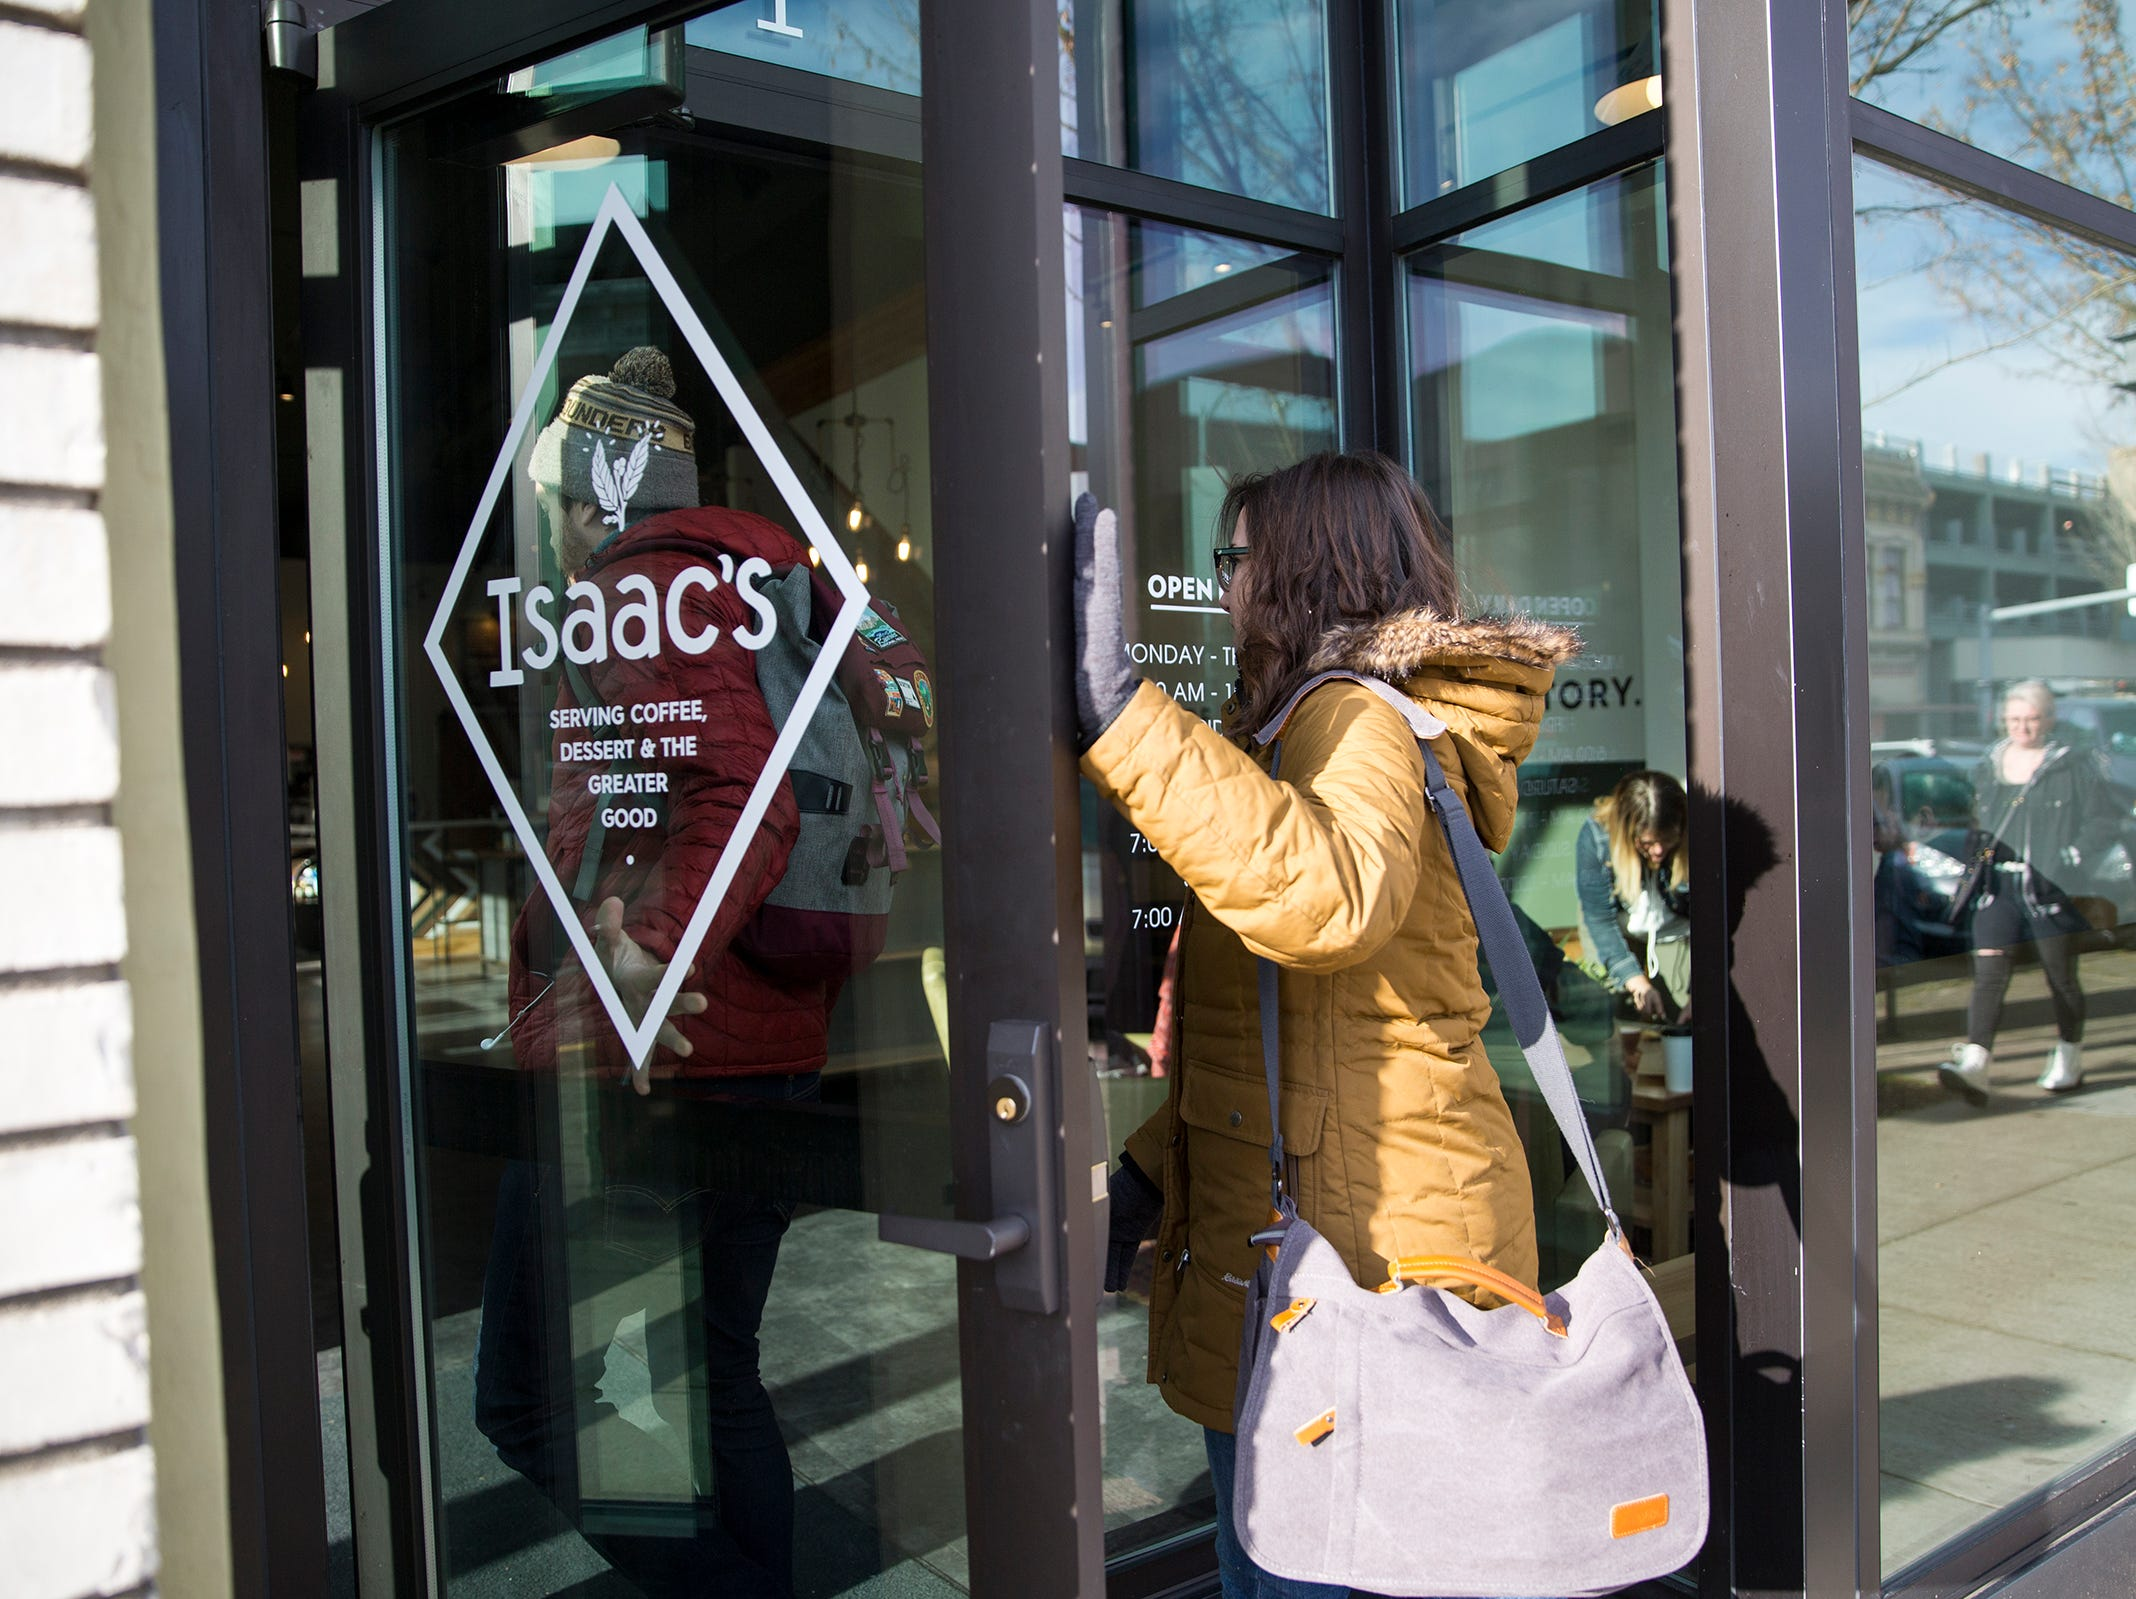 Isaac's Downtown, a new café in downtown Salem on Wednesday, Jan. 2, 2019. The coffee shop is from the owners of IKE Box and Isaac's Room.